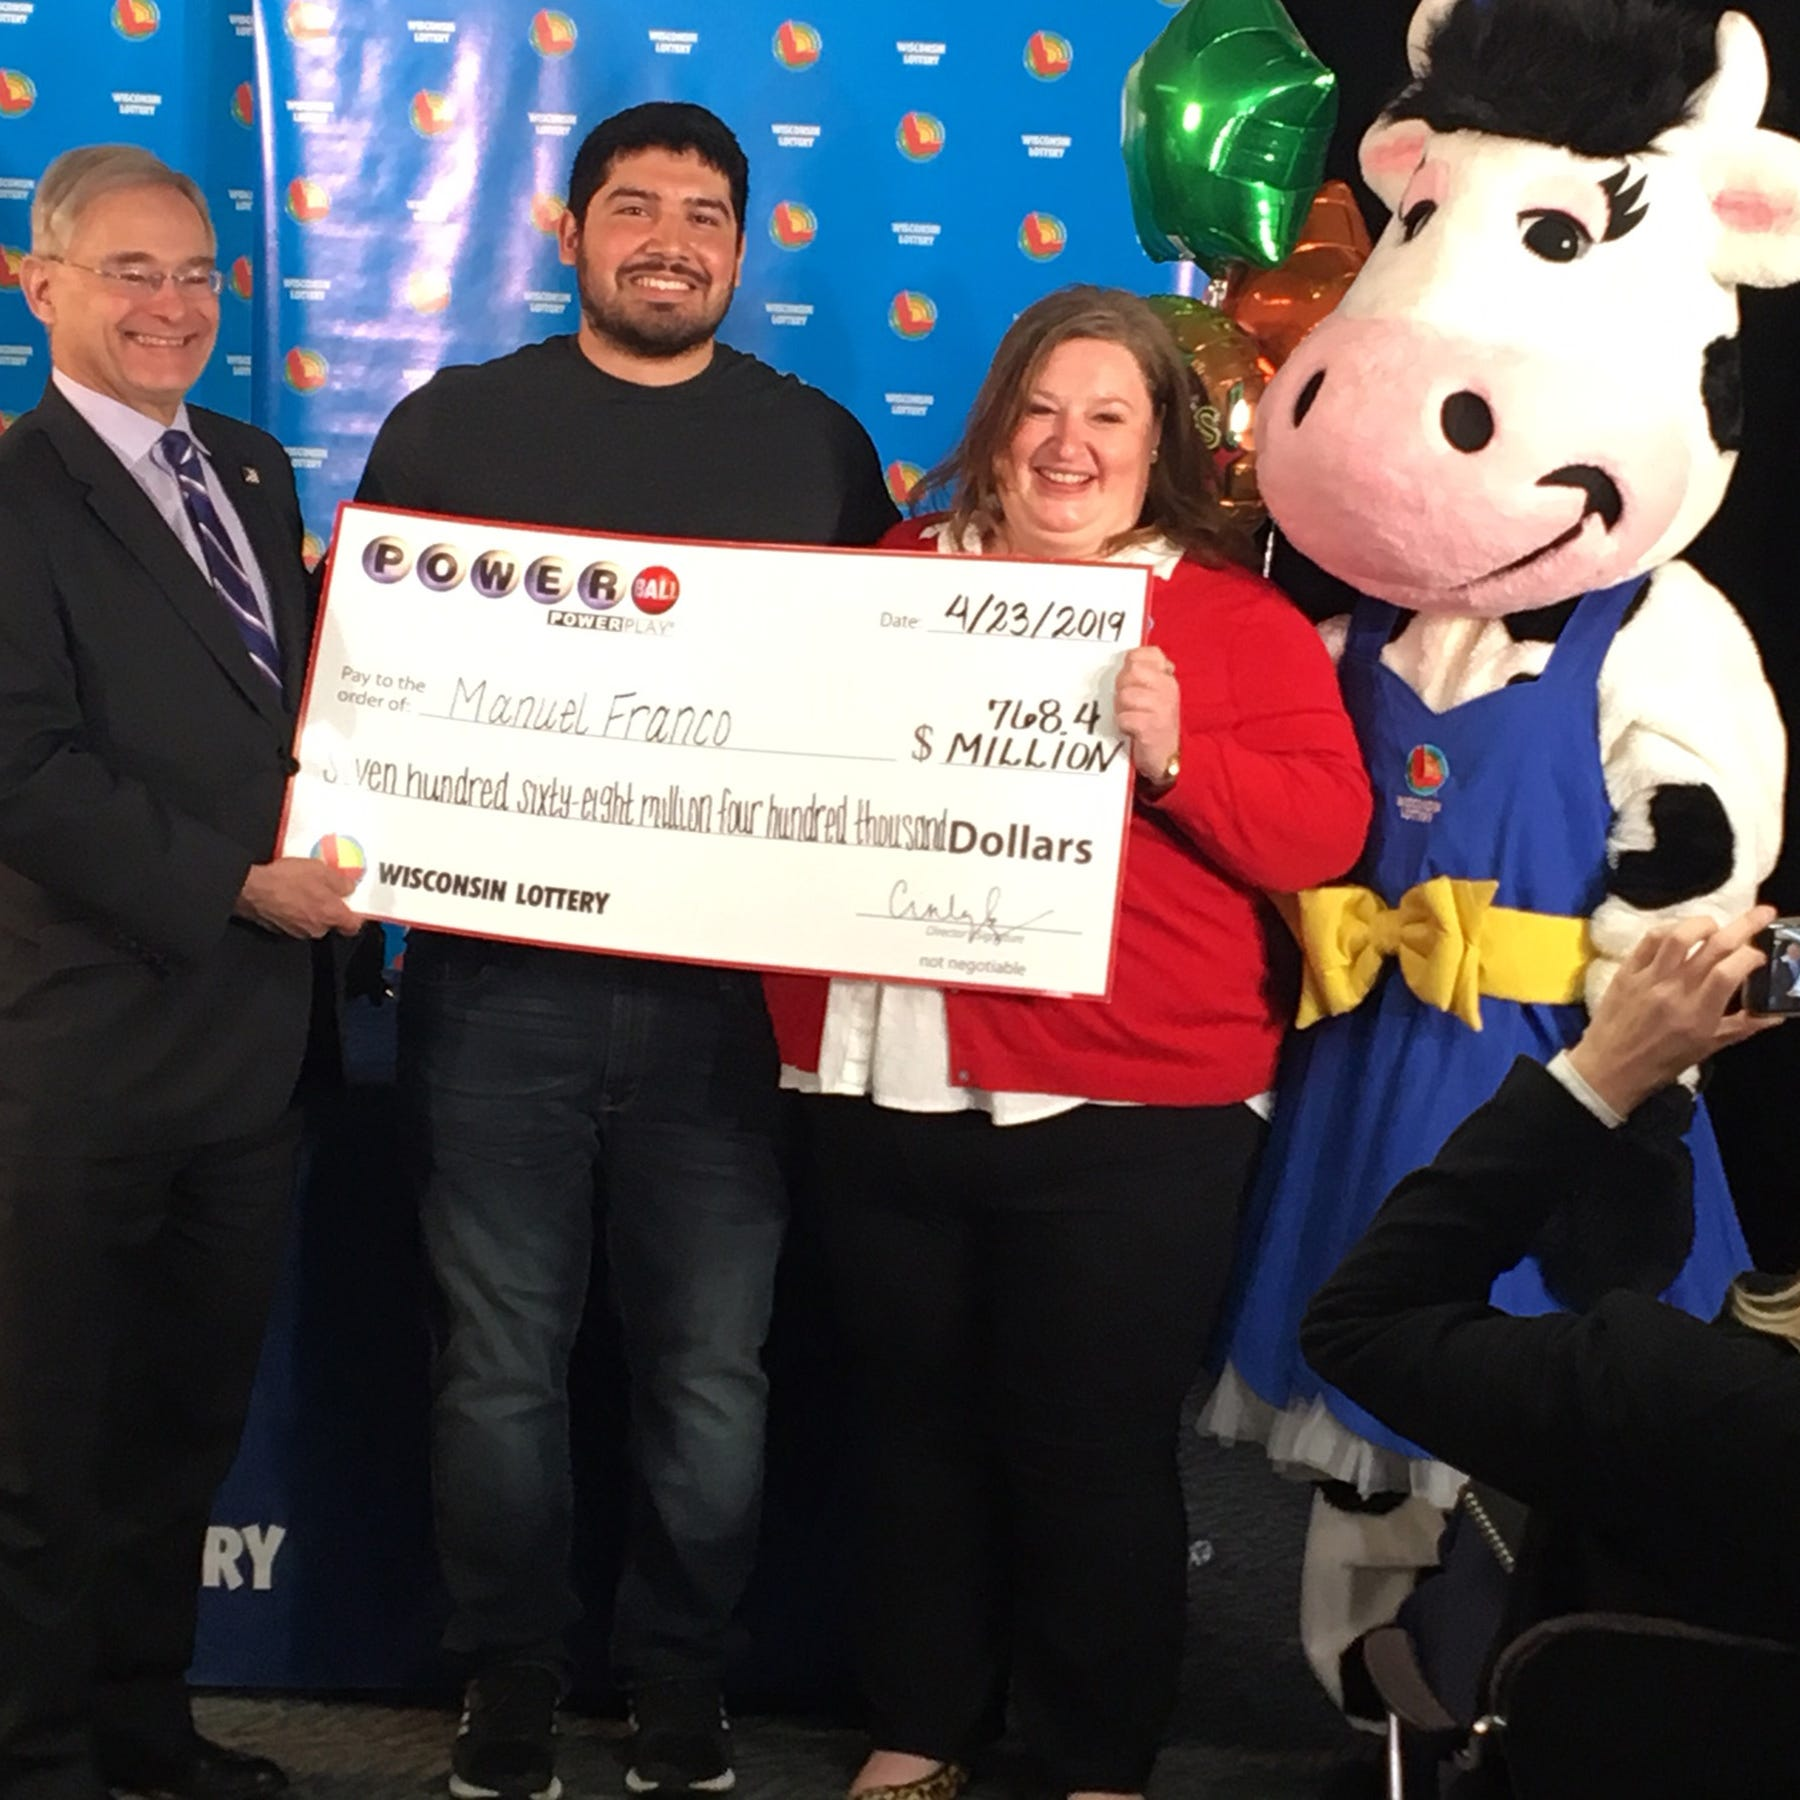 West Allis man wins $768 million Powerball jackpot, had a 'lucky feeling' after he purchased ticket